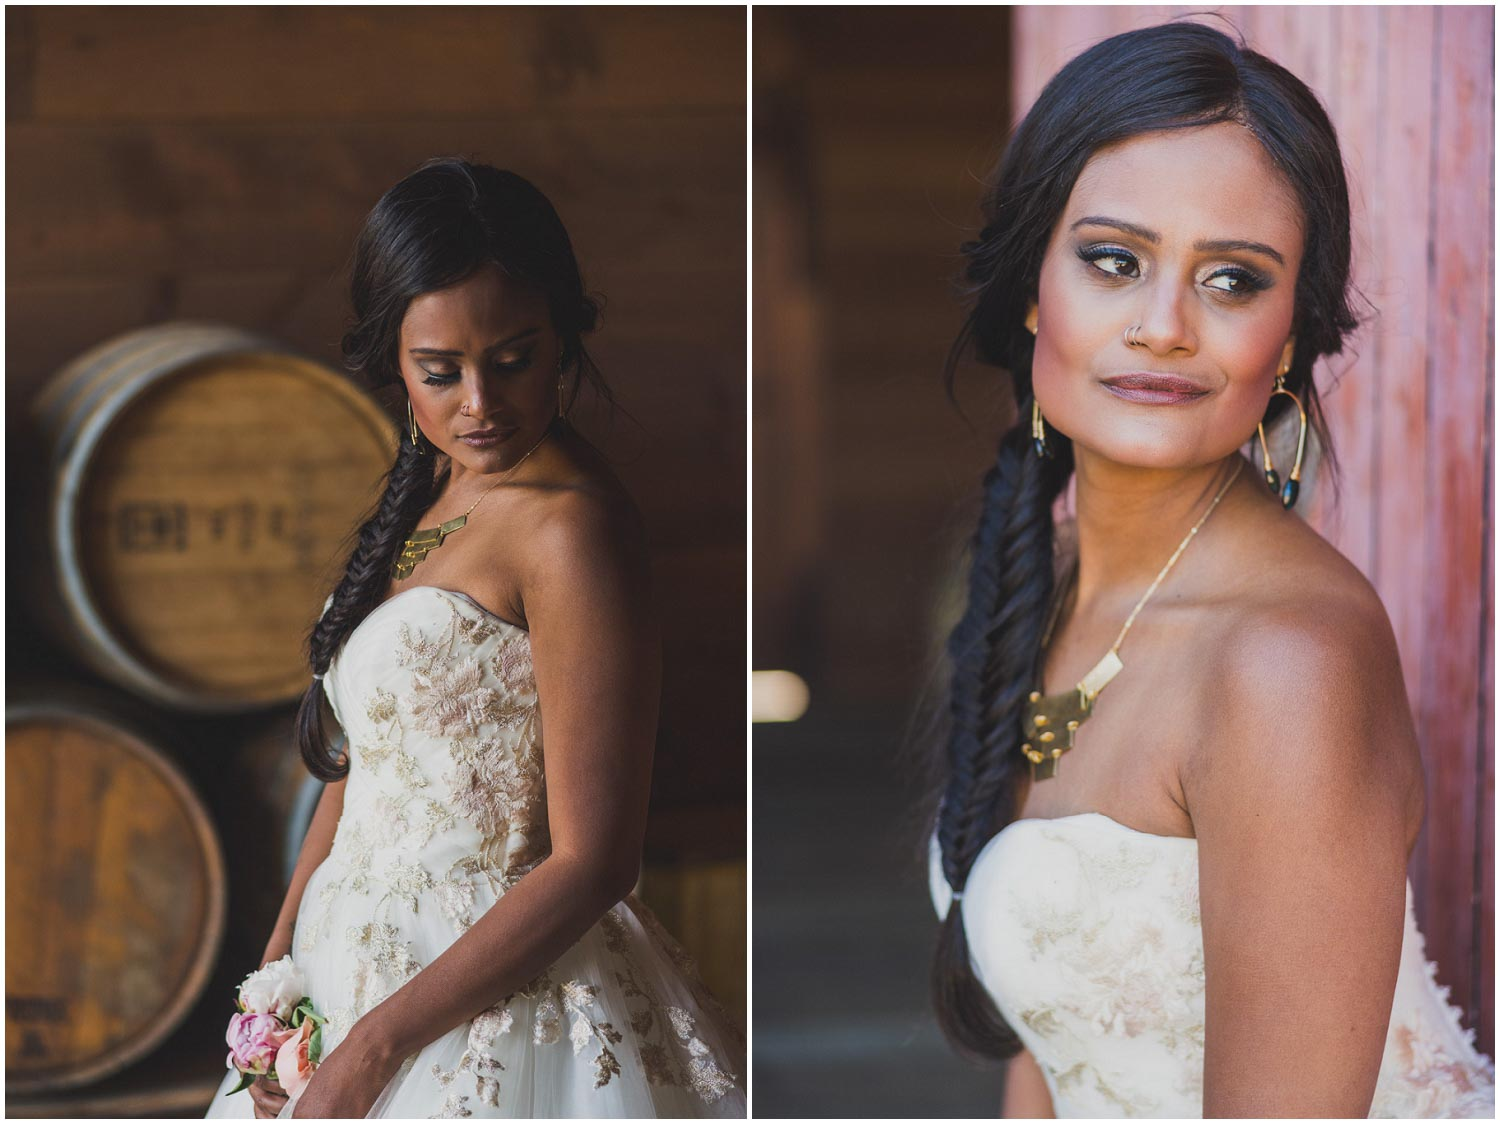 bride in ballgown with floral embroidery and custom jewelry